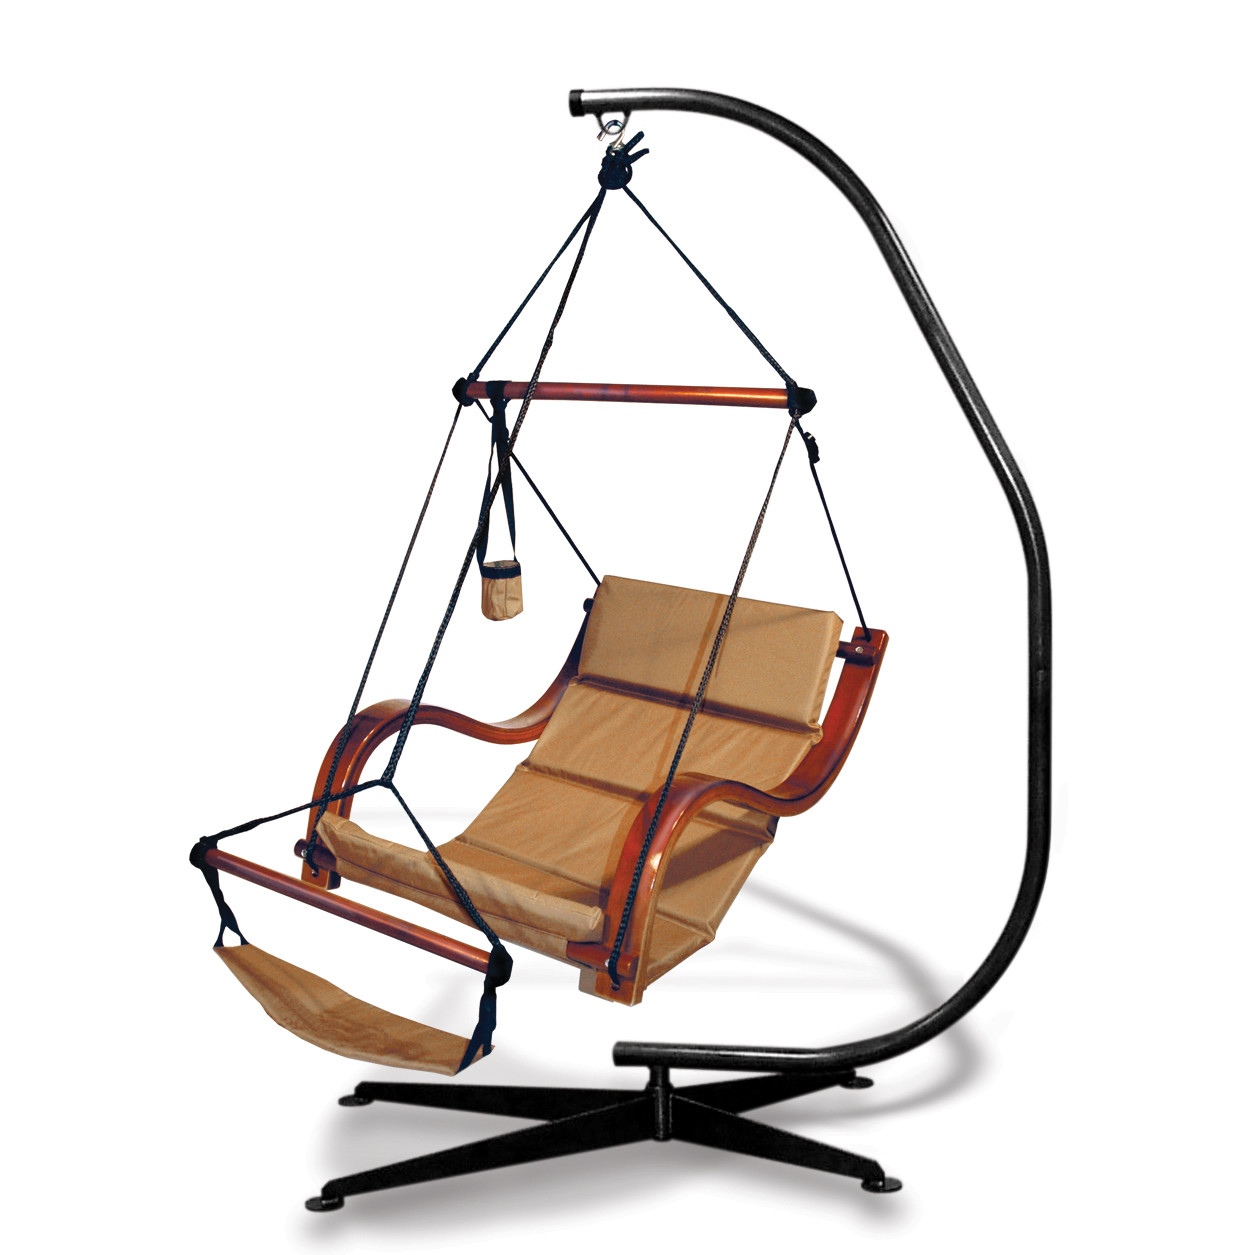 Hanging Chair Frame Best Rest Hammock Hanging Chair With C Frame Stand Tan